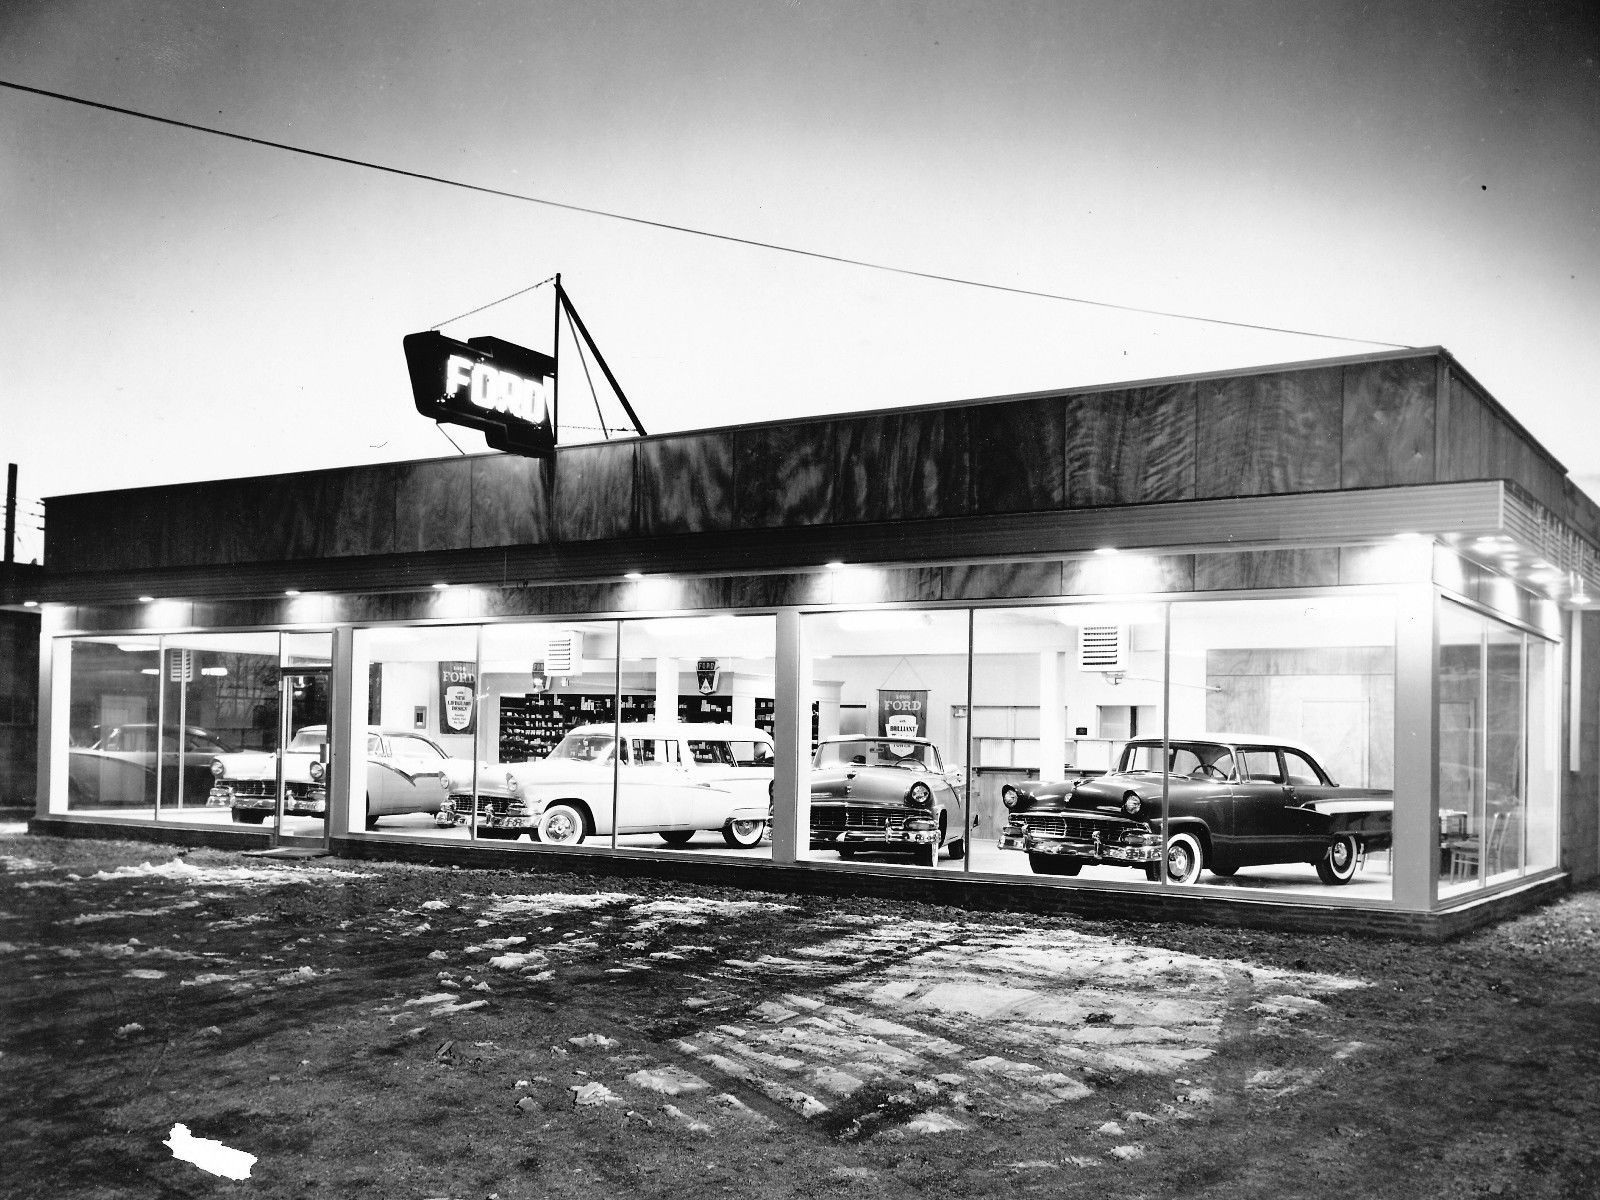 1956 Ford Dealership Nanticoke Pa At Dusk 8 X 10 Photograph Chevy Dealers Vintage Cars Ford